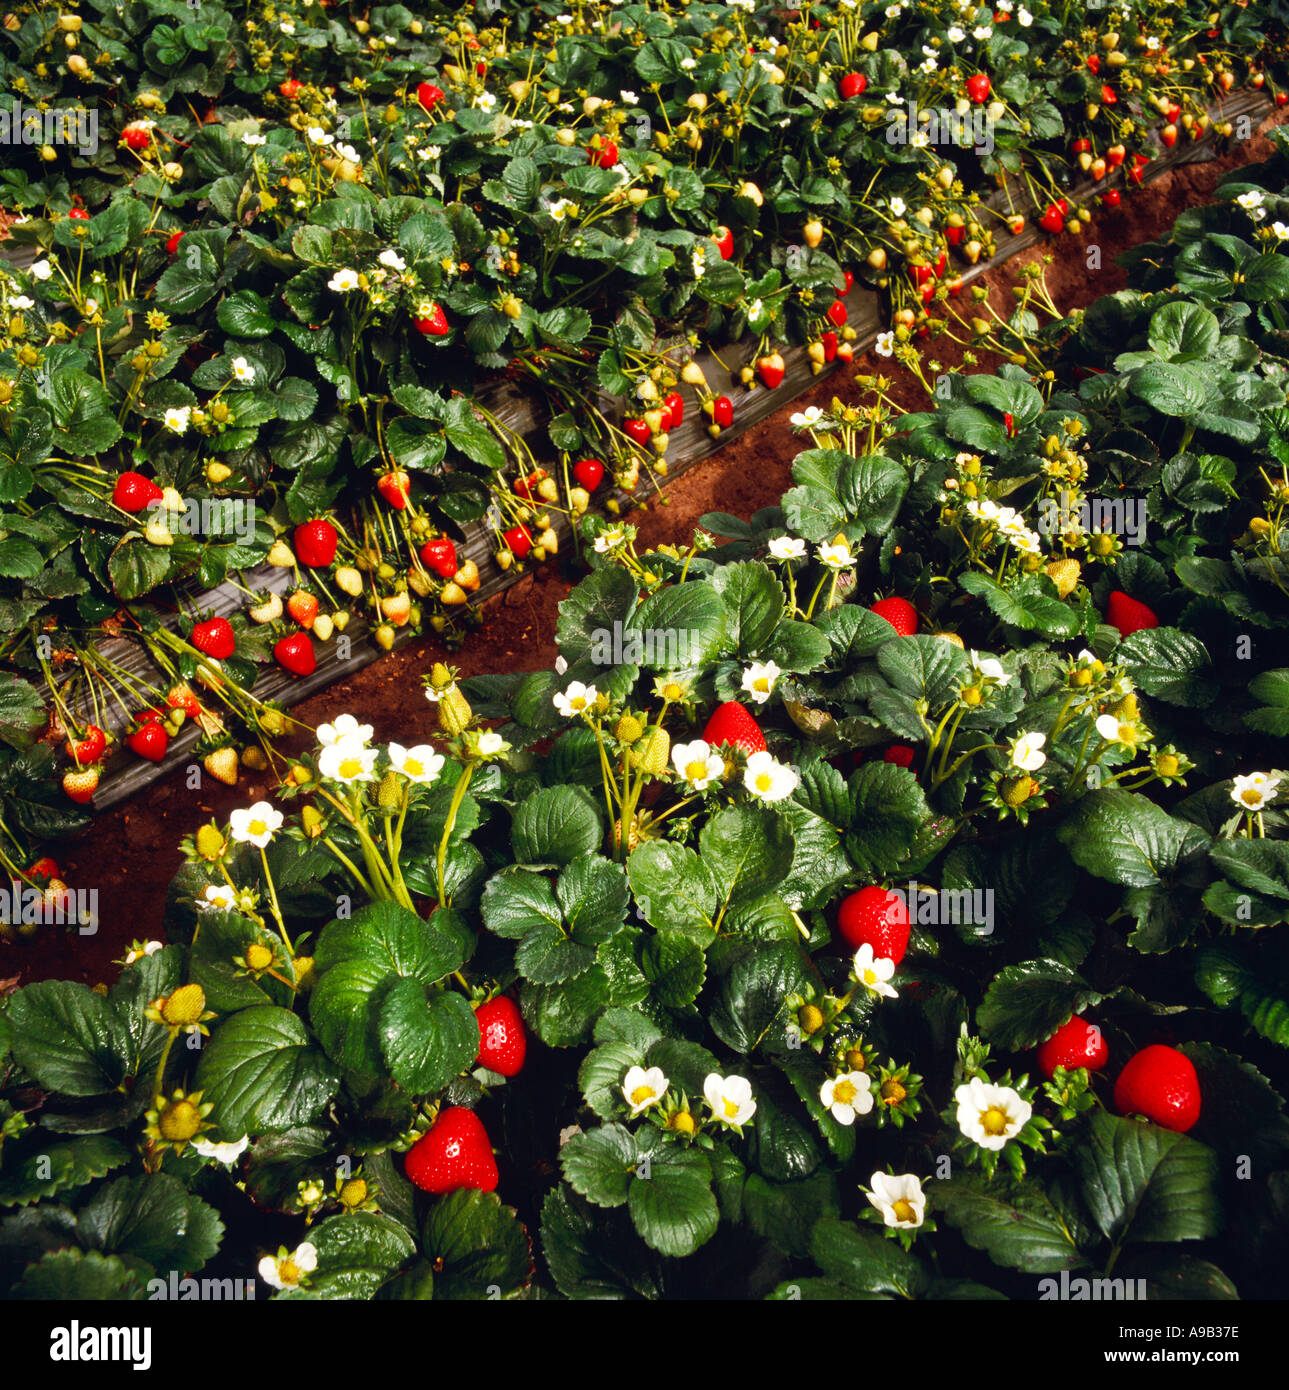 Agriculture - Rows of strawberry plants with a heavy crop of ...